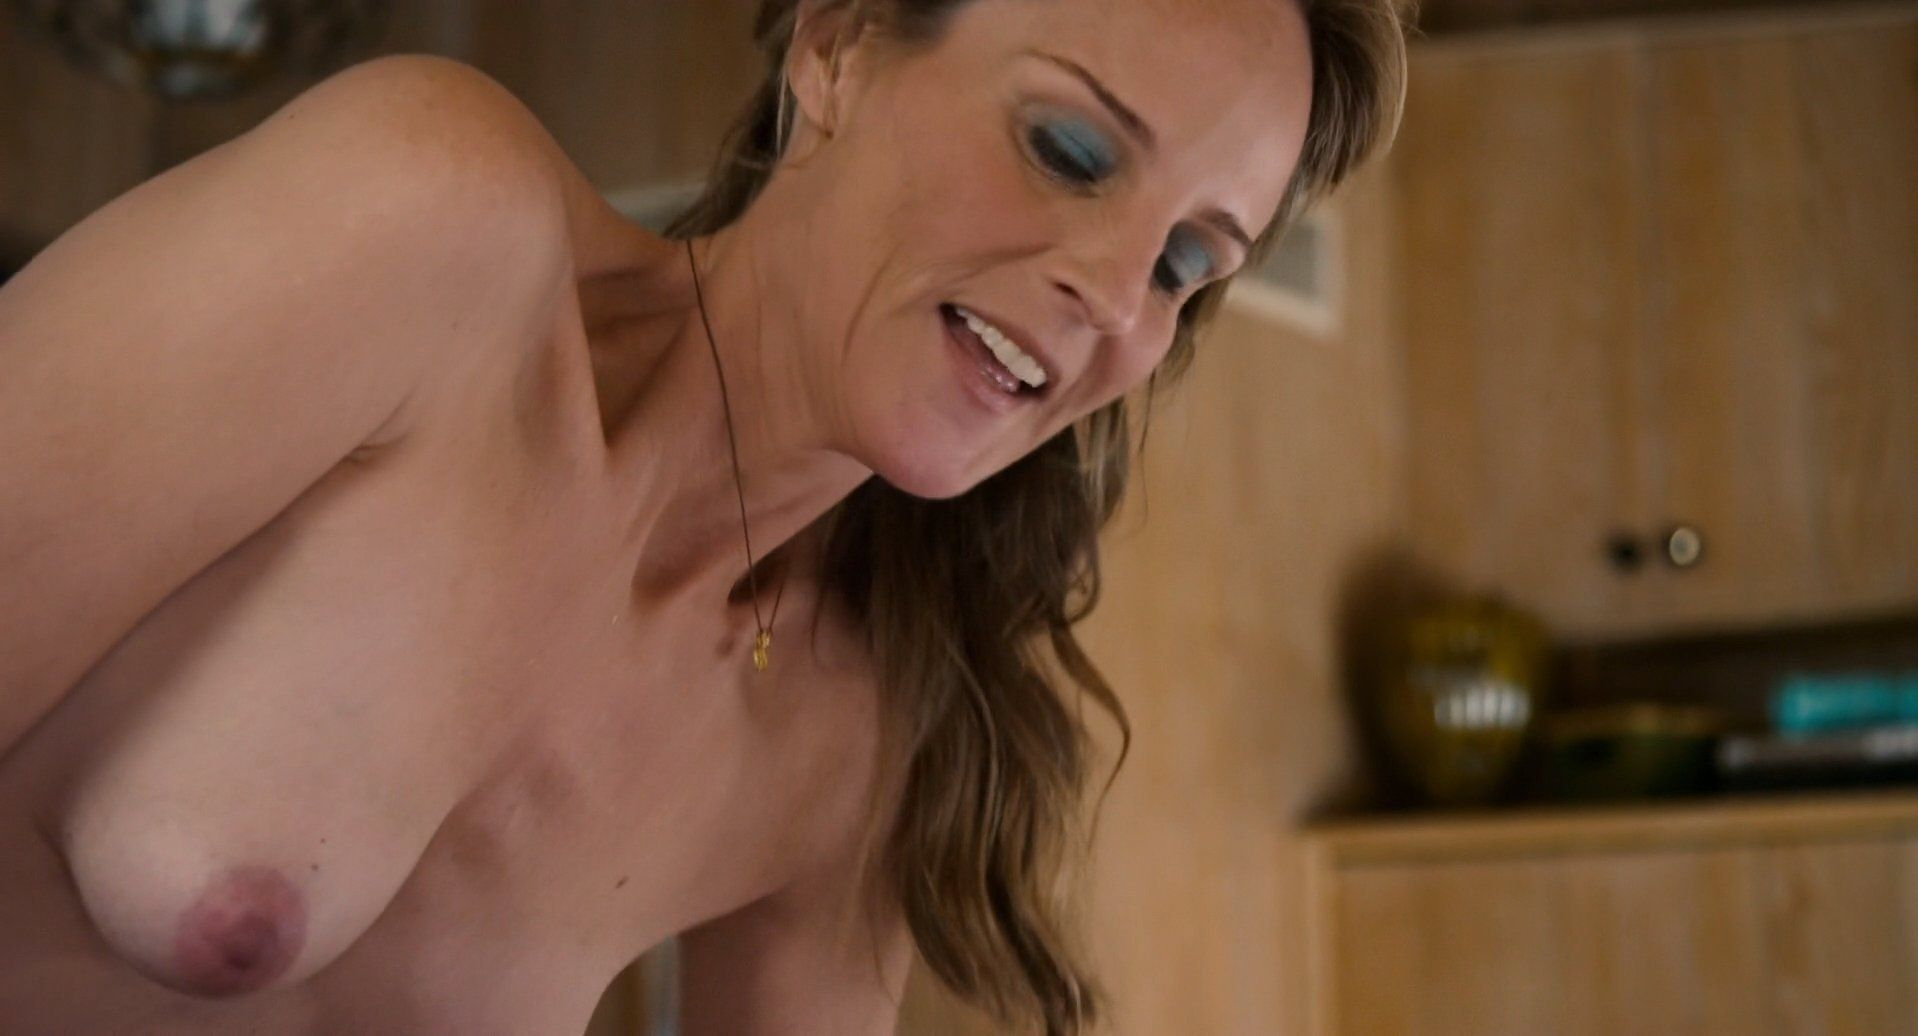 Veronica avluv squirts from her pussy and ass at trip XXX